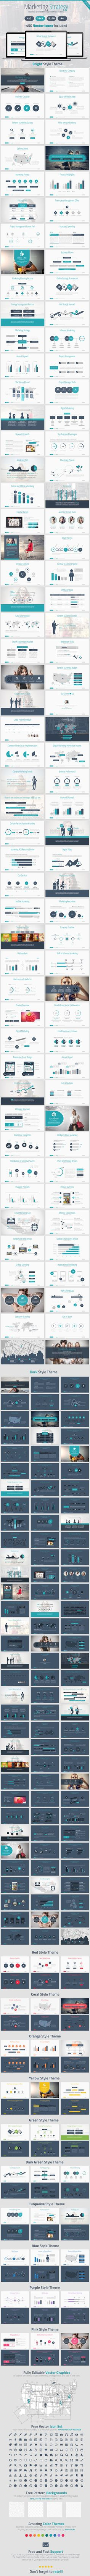 http://graphicriver.net/item/marketing-strategy-powerpoint-presentation/14614905?ref=veshi